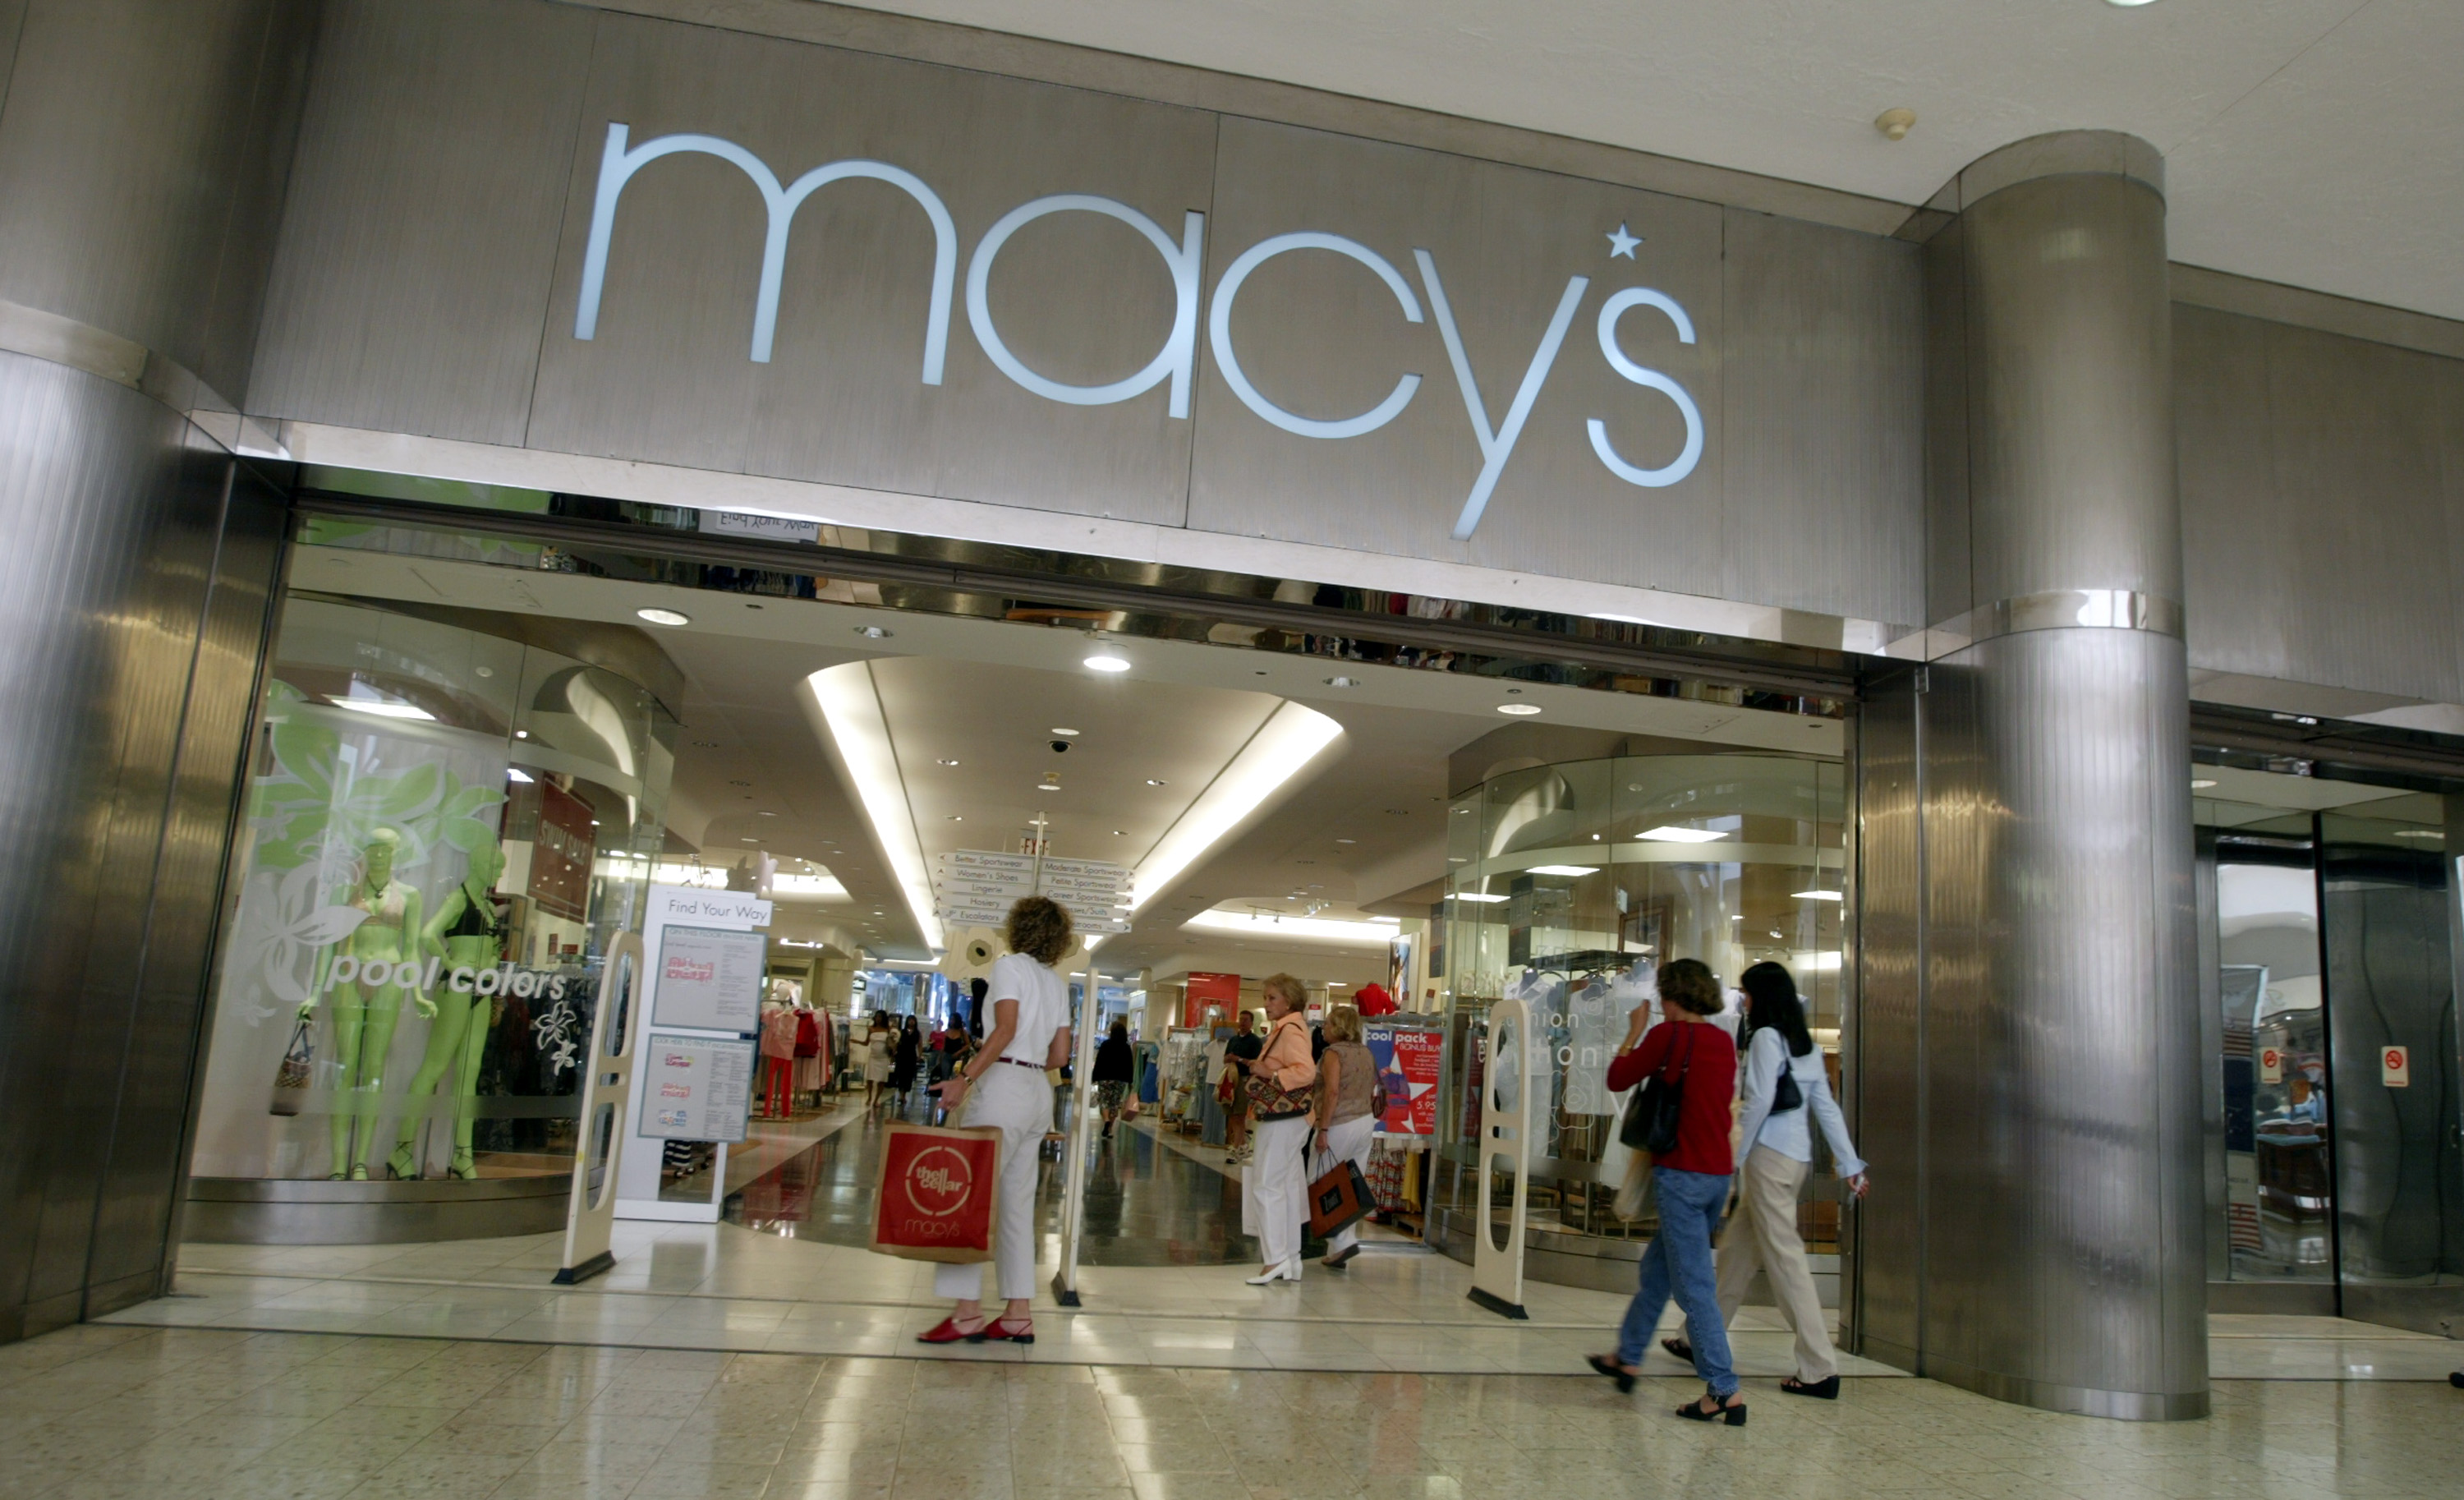 Macy's to Host Virtual Job Fair to Hire Seasonal Workers